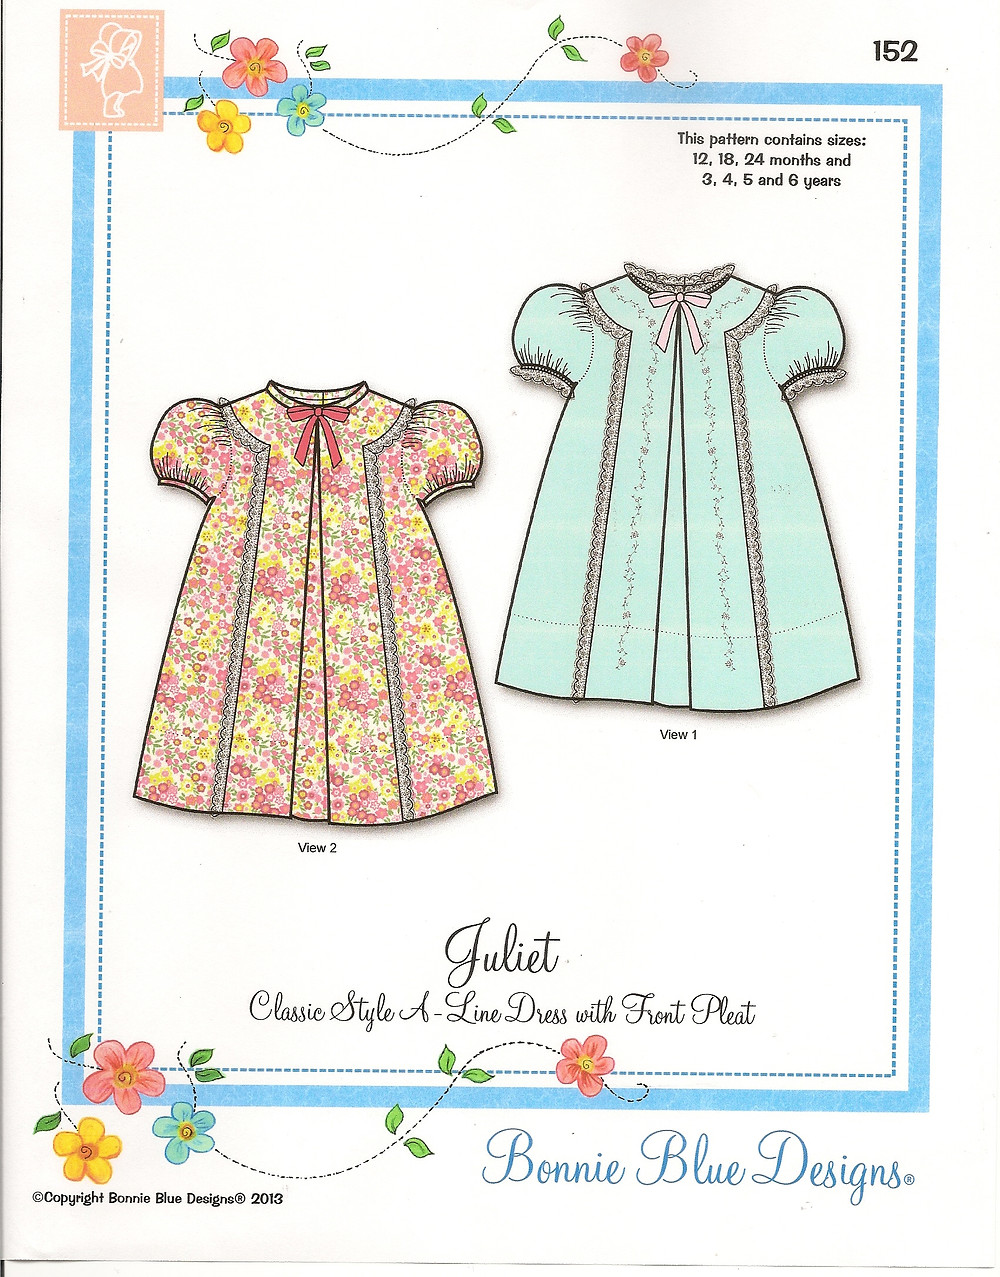 Juliet Dress Pattern available from Pink Hollybush Designs